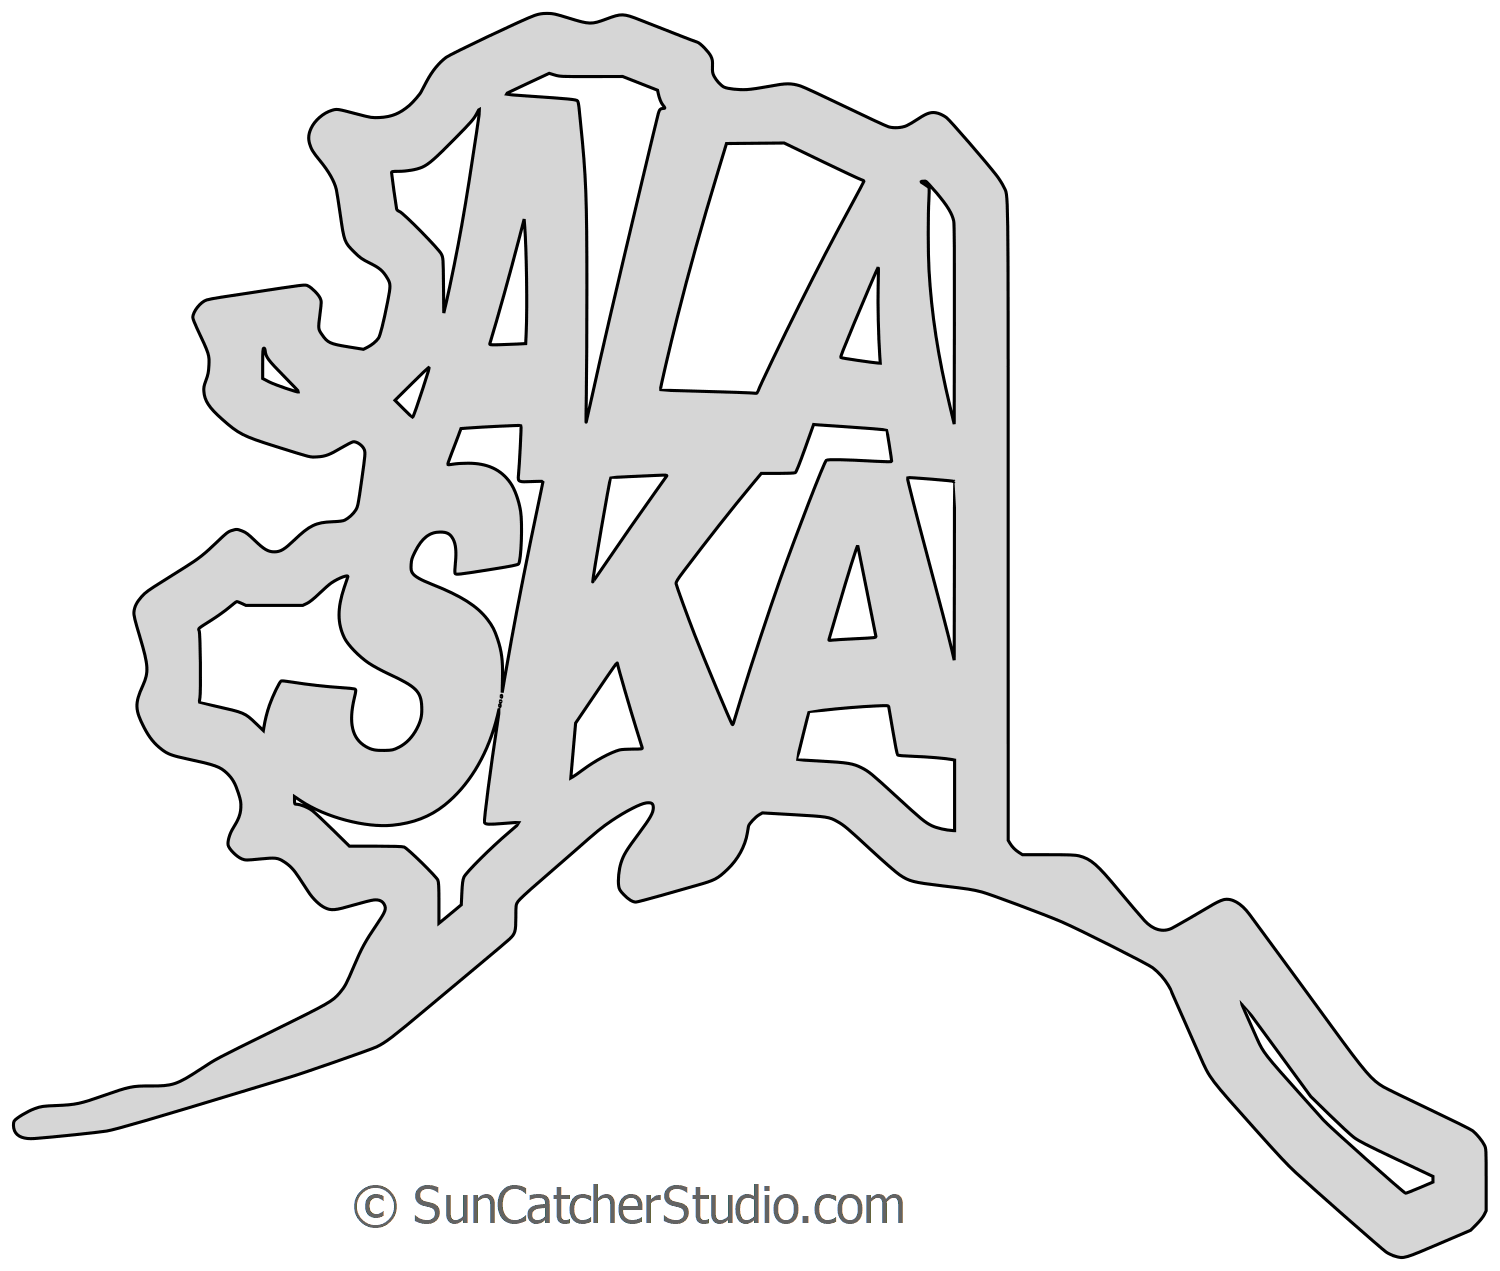 States alaska shape clipart picture library Alaska - Map Outline, Printable State, Shape, Stencil ... picture library